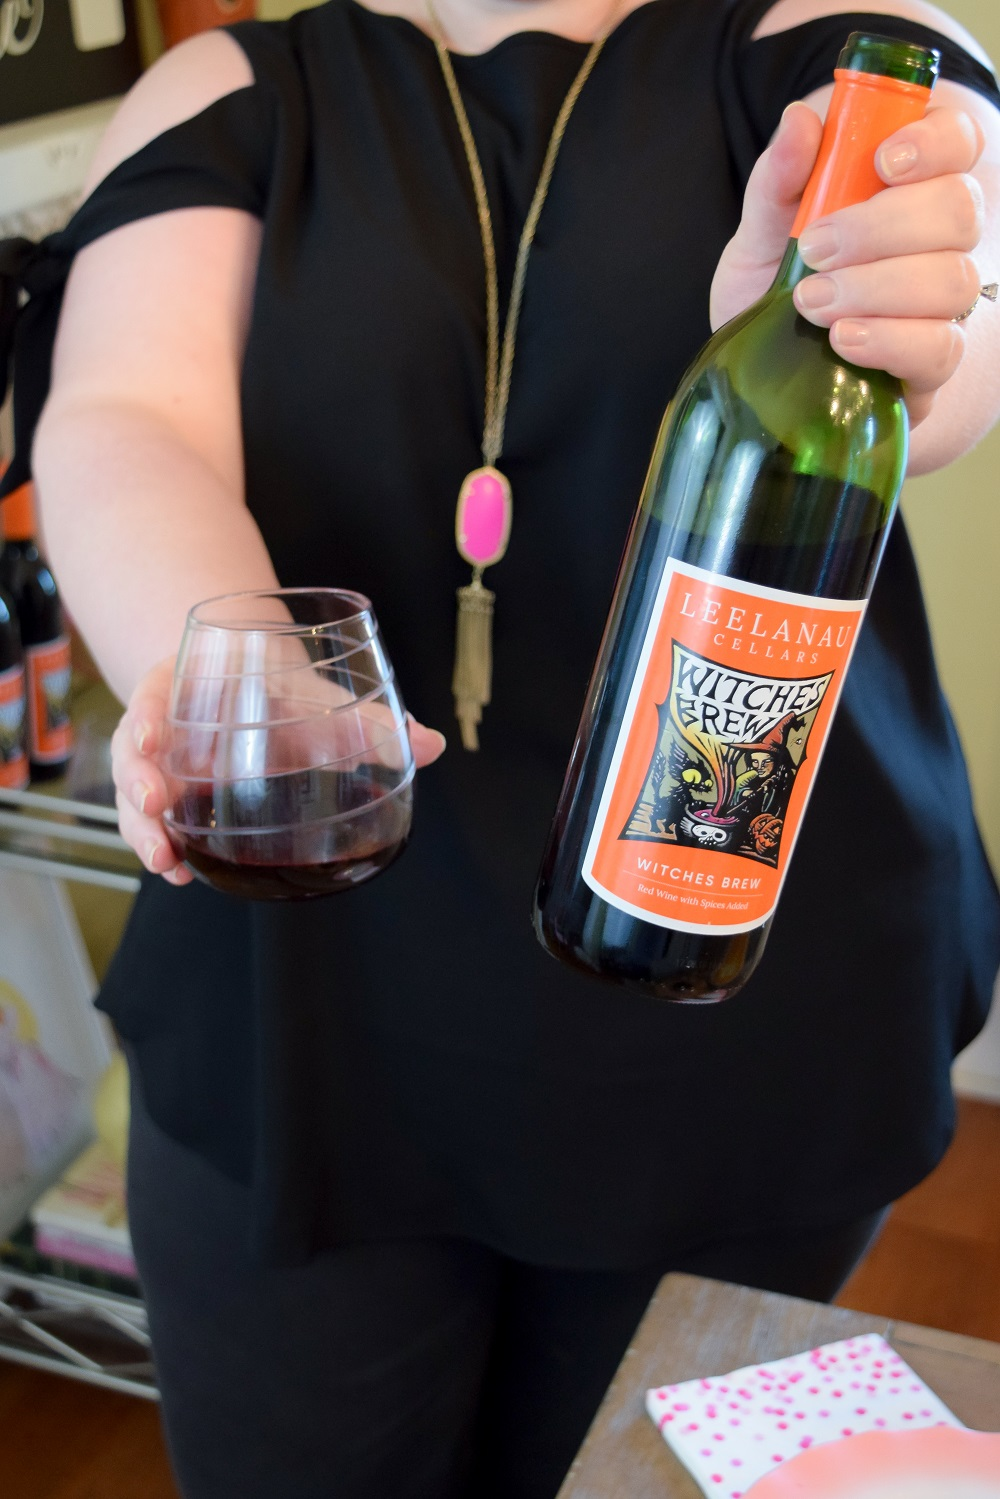 Kicking Off The Halloween Season With Witches Brew Wine From Leelanau Cellars In Omena Michigan Near Traverse City Featuring P Witches Brew Food Wine Recipes